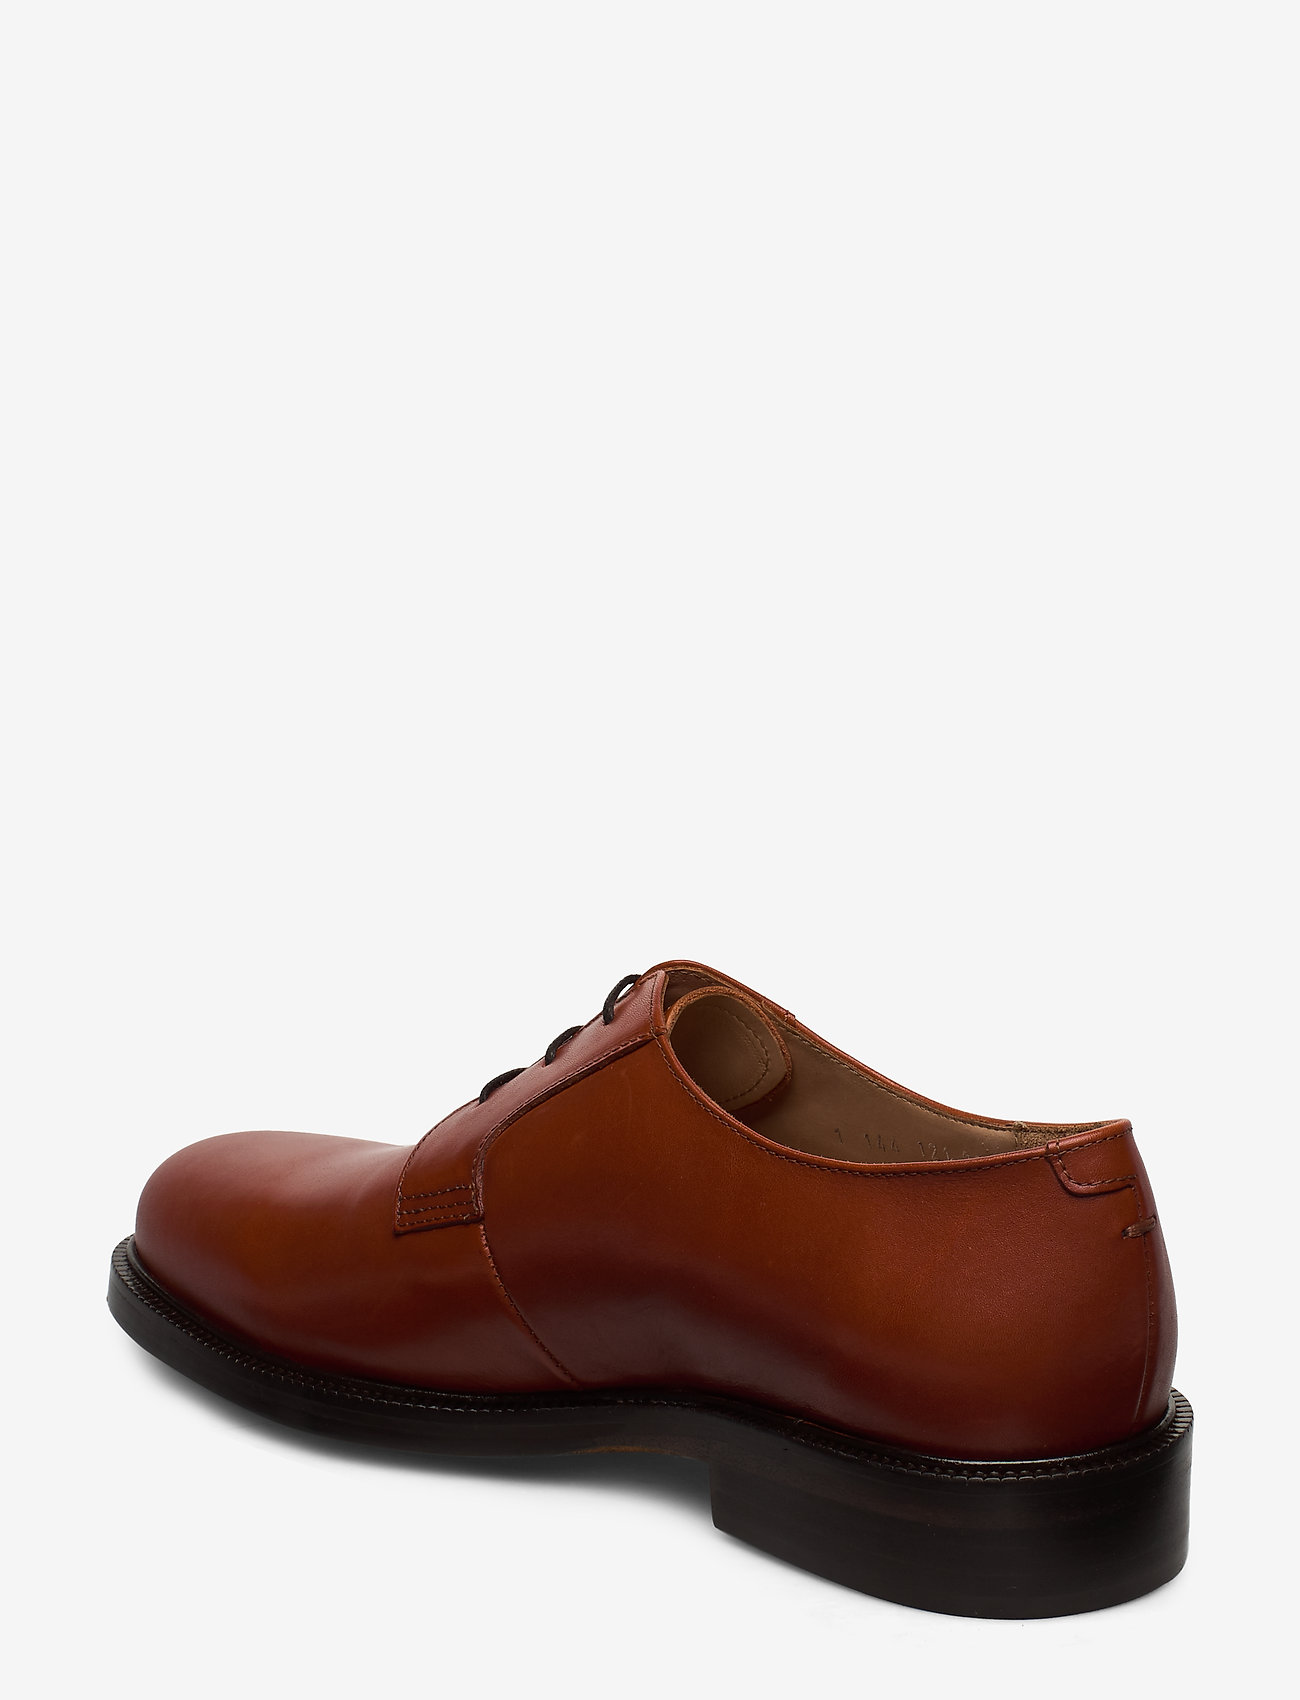 Bond Derby Shoe (Tan) (144 €) - Royal RepubliQ CR7XN